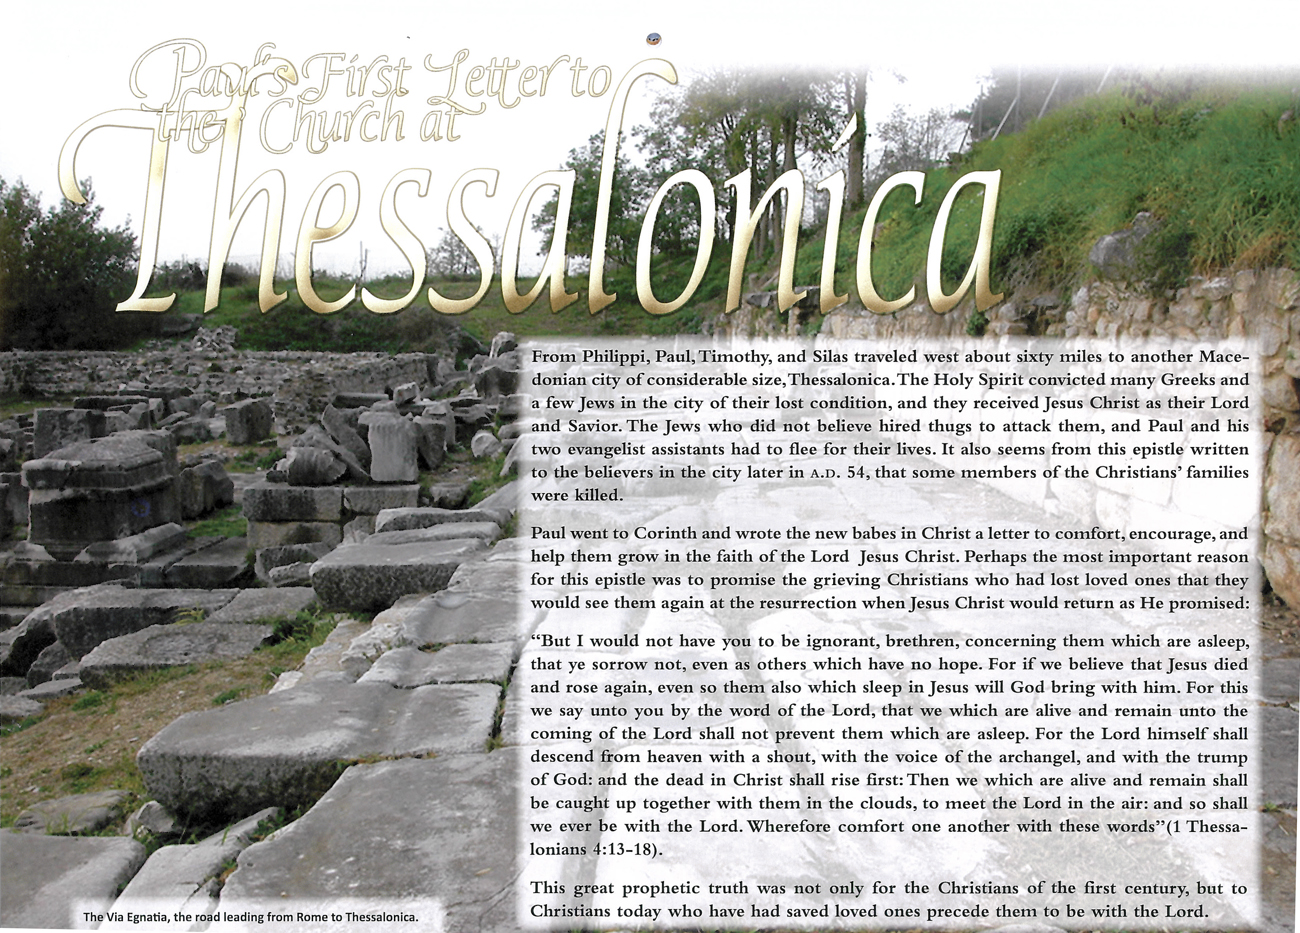 2012 Prophecy Calendar: August - Paul's First Letter to the Church at Thessalonica